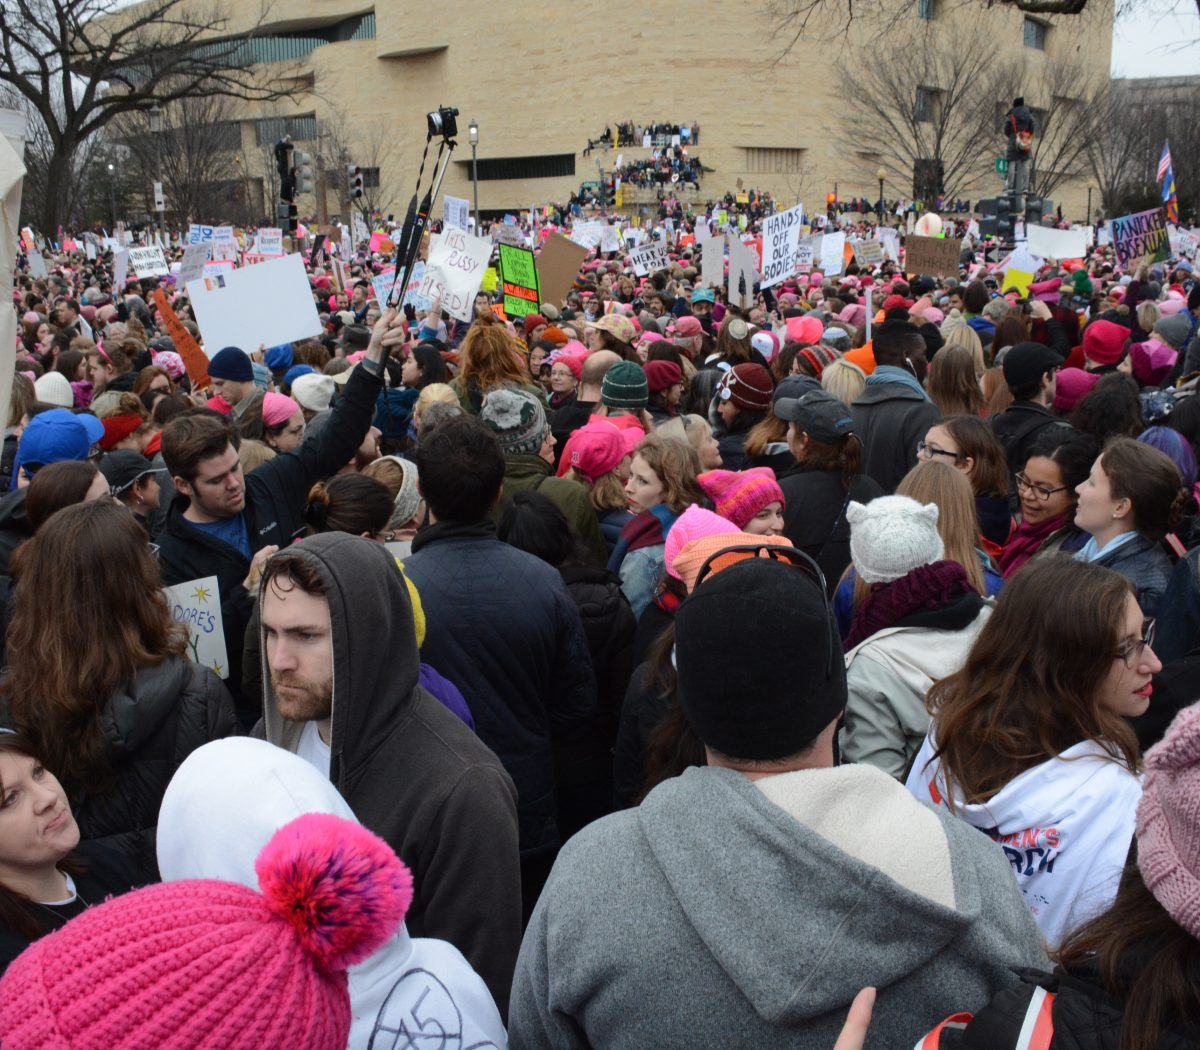 Women all over the world rang out a message demanding equality on Saturday, January 21, 2017. Over a million women showed up in Washington, D.C. /Photo by Roy Lewis